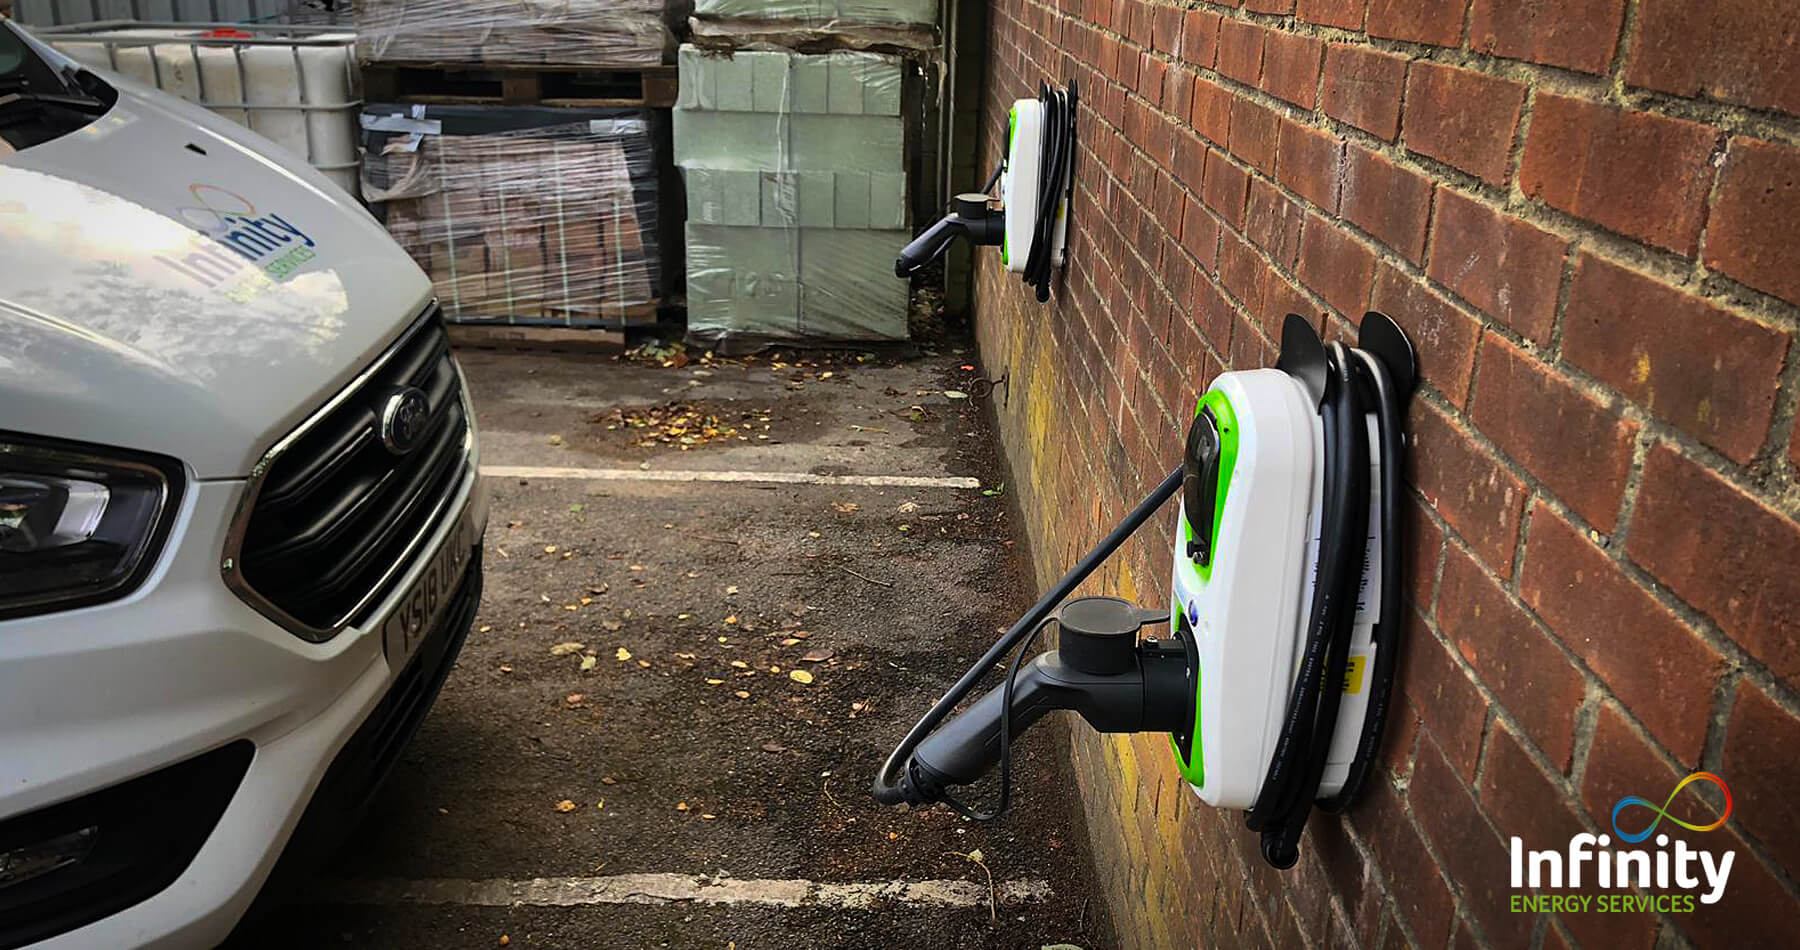 gallery ev chargers business 2 - Electric Car Charging Points for Business